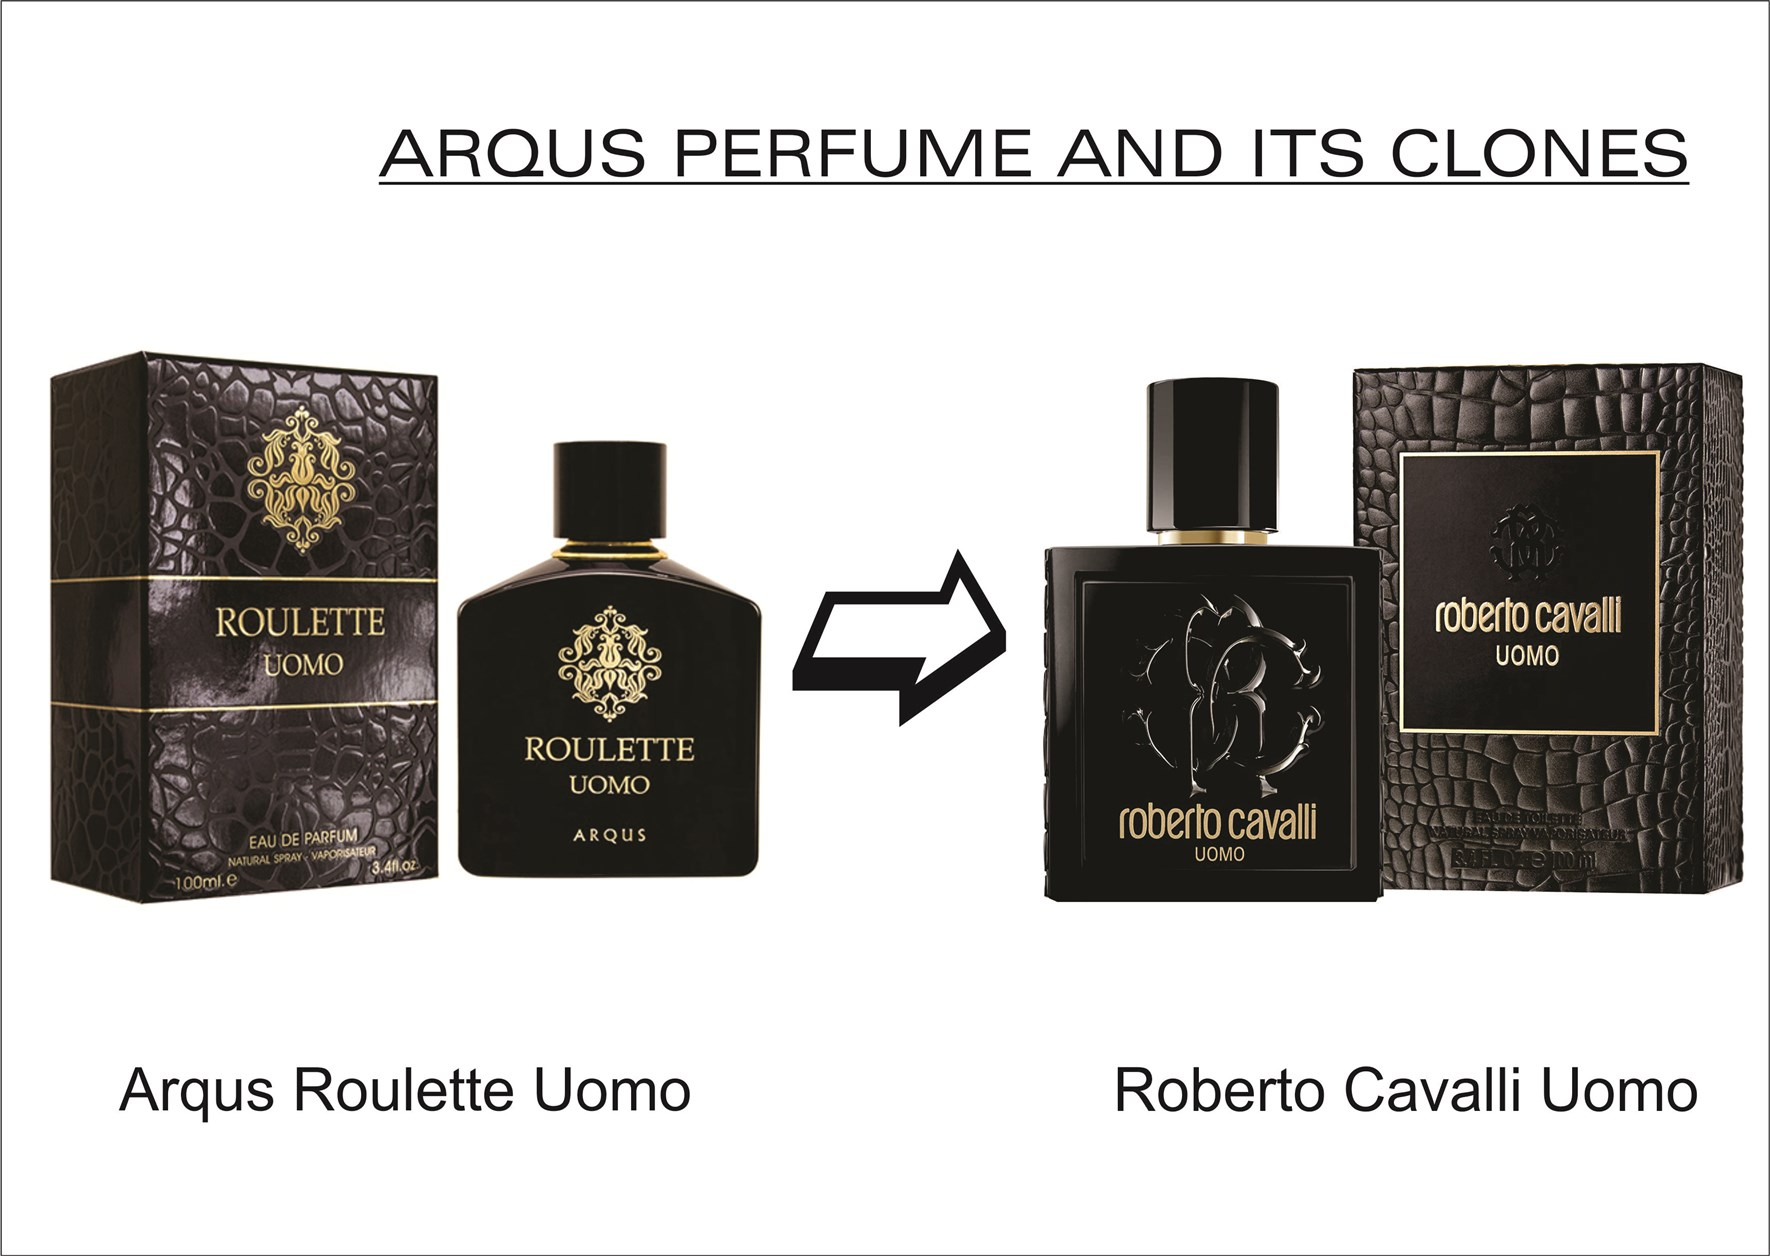 arqus-roulette-uomo-for-men-100-ml-edp-by-lattafa-perfumes-roberto-cavalli-uomo-for-man-100-ml-edt